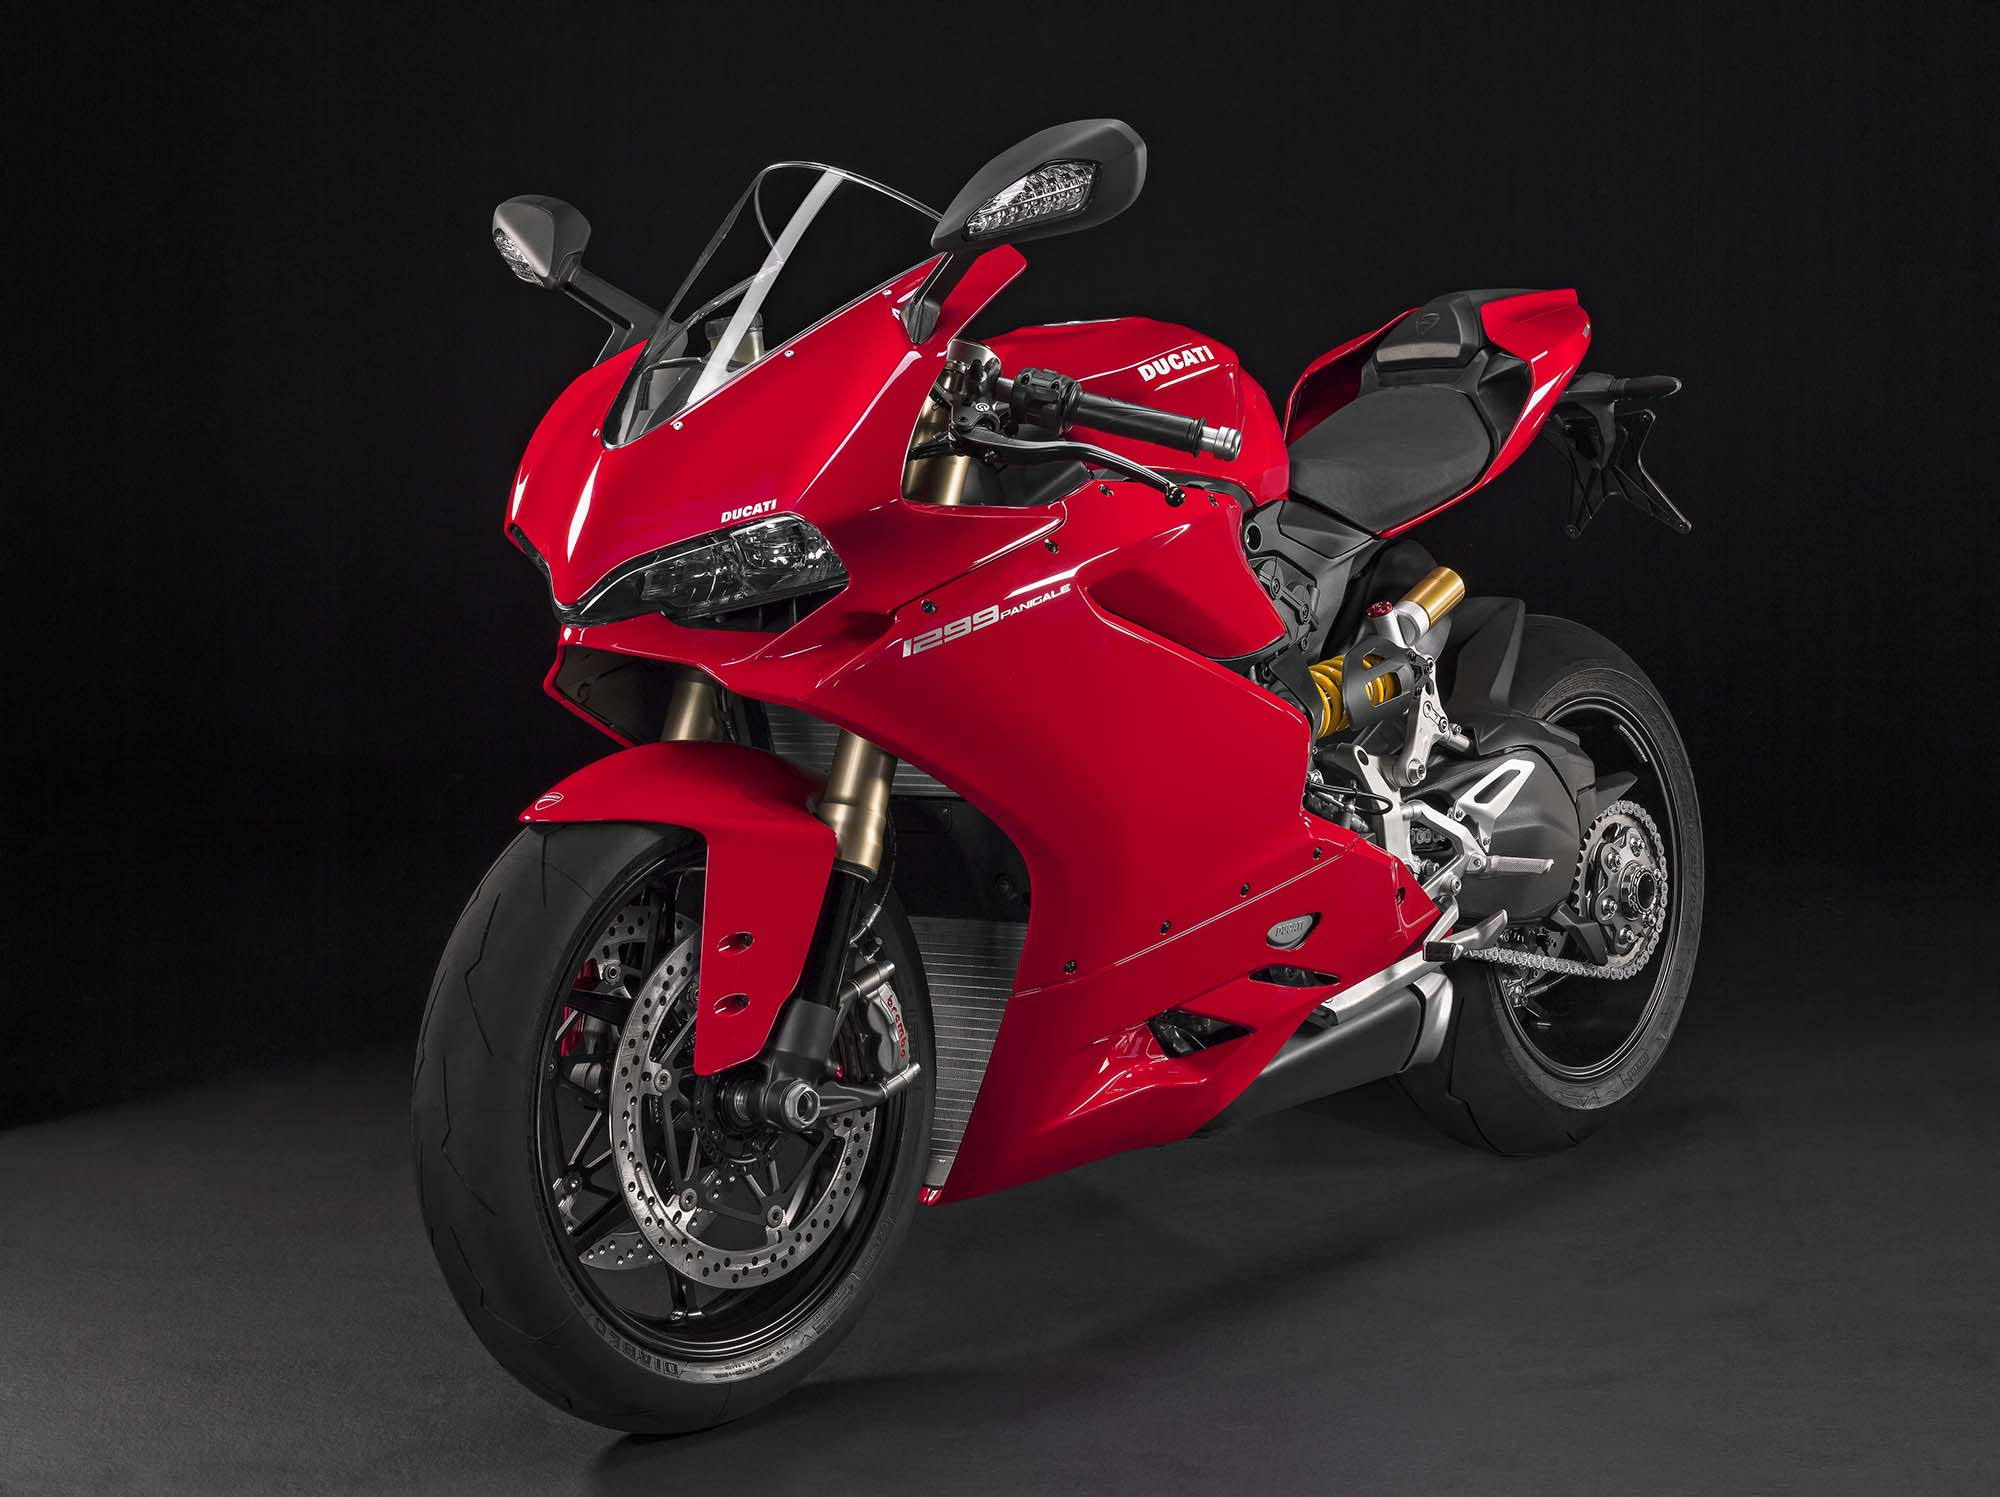 Ducati 1299 Panigale Mega Gallery Asphalt Rubber HD Wallpapers Download free images and photos [musssic.tk]